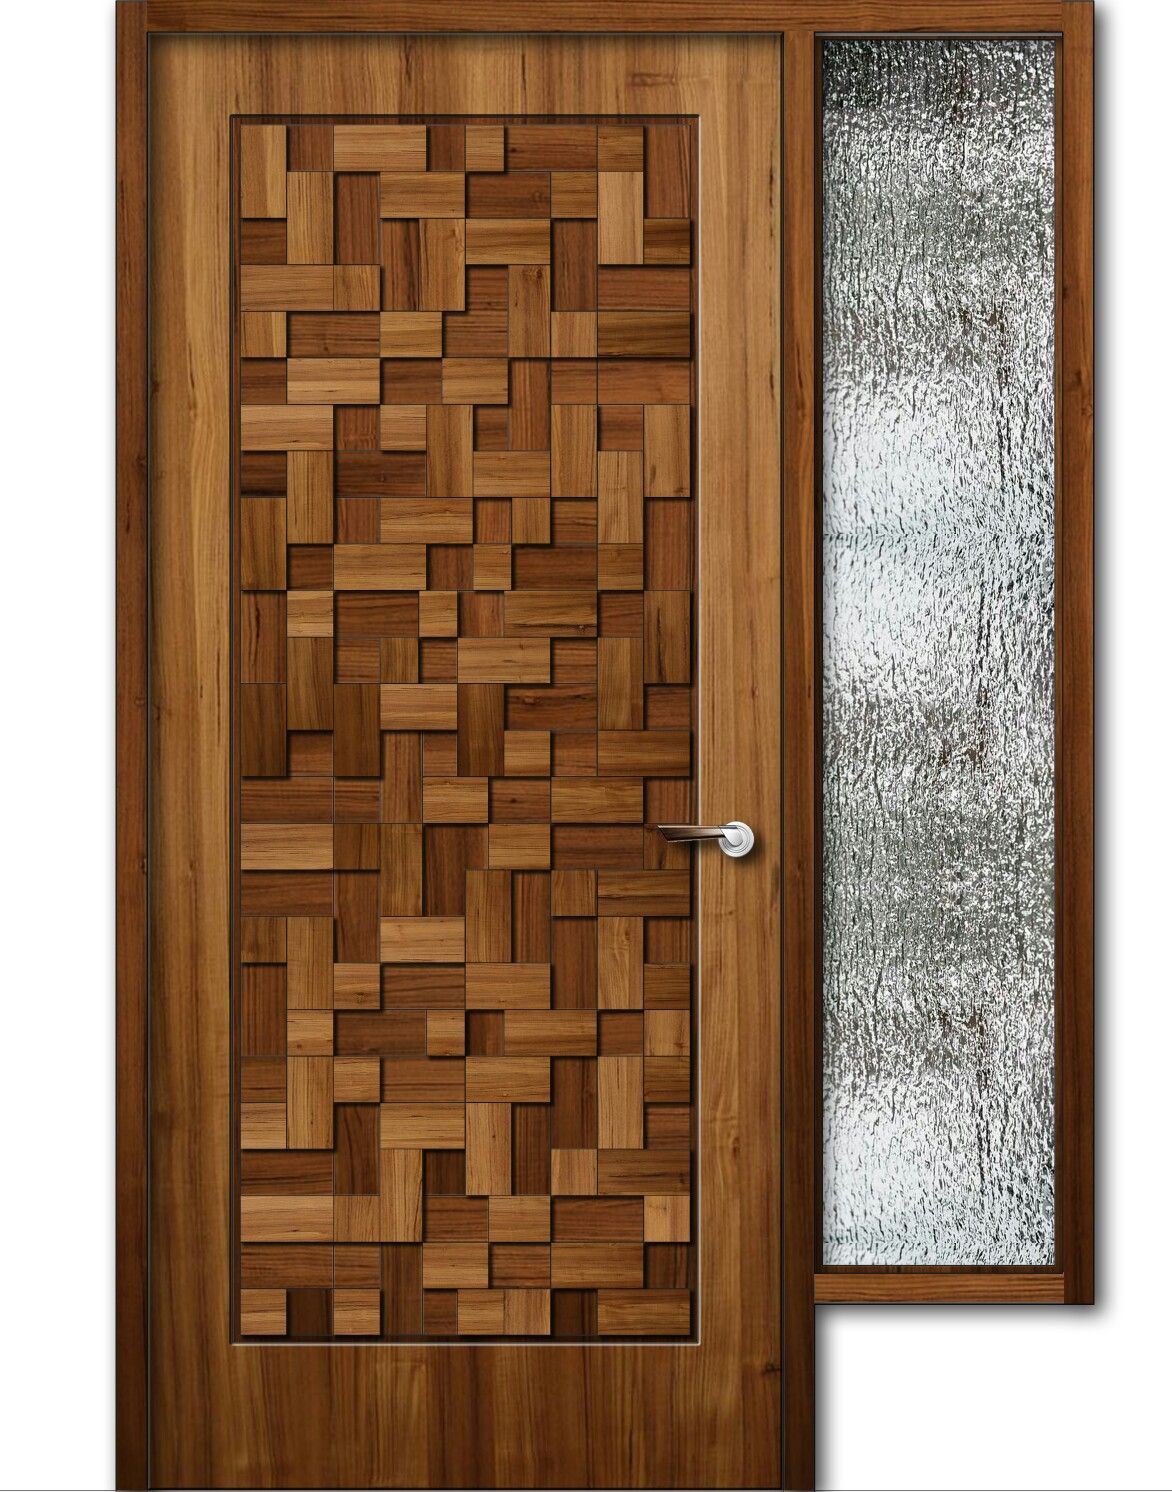 Teak wood finish wooden door with window 8feet height for New main door